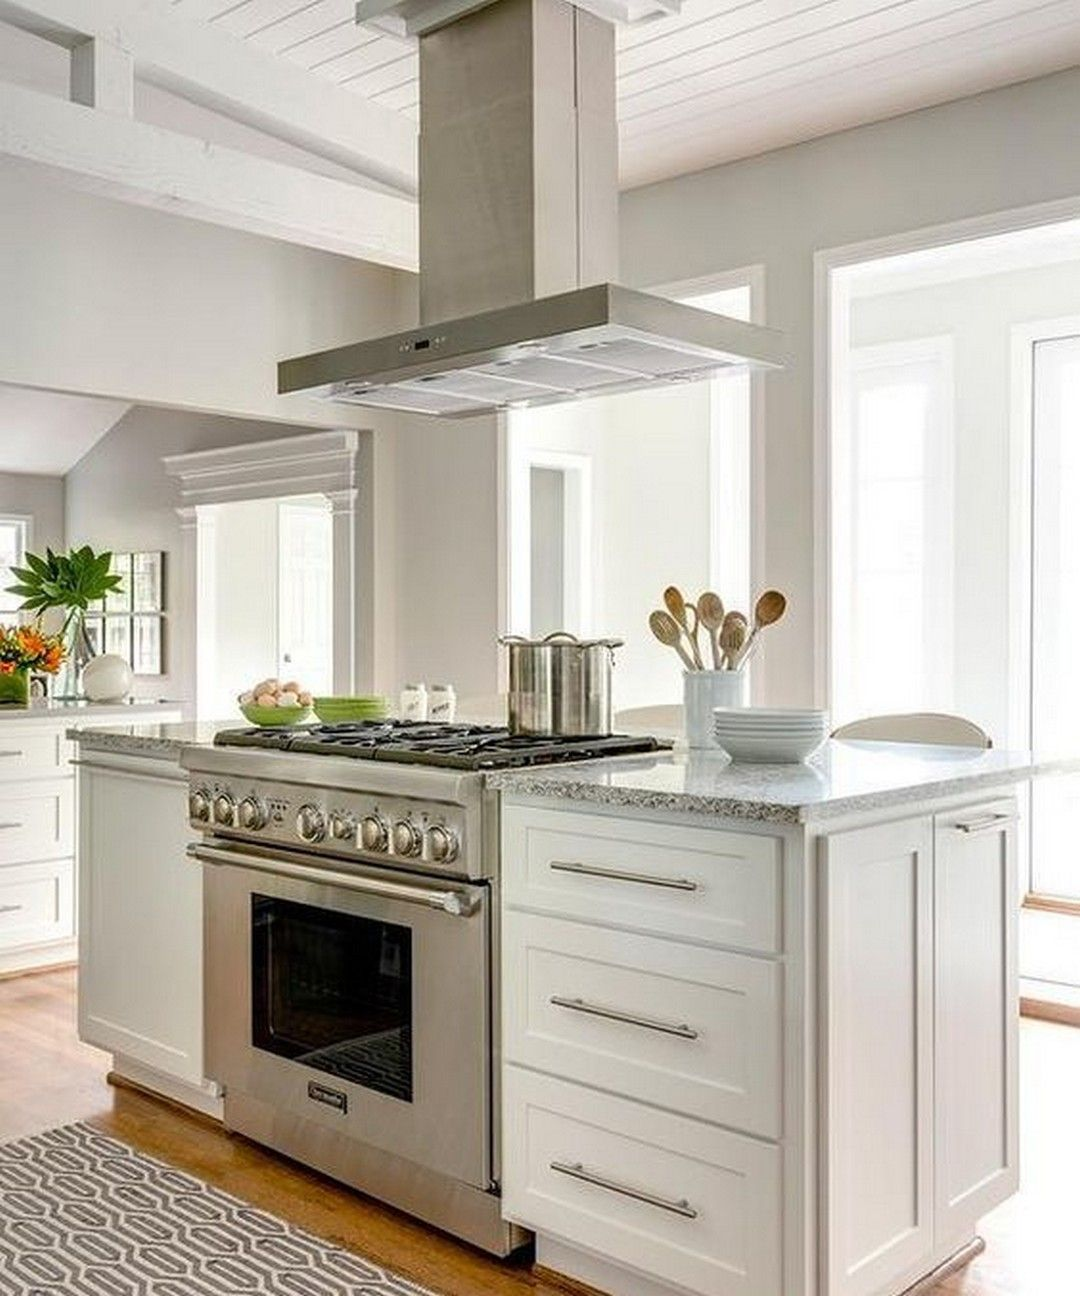 Creative Kitchen Islands With Stove Top Makeover Ideas Kitchen Island With Cooktop Kitchen Island With Seating Kitchen Layout